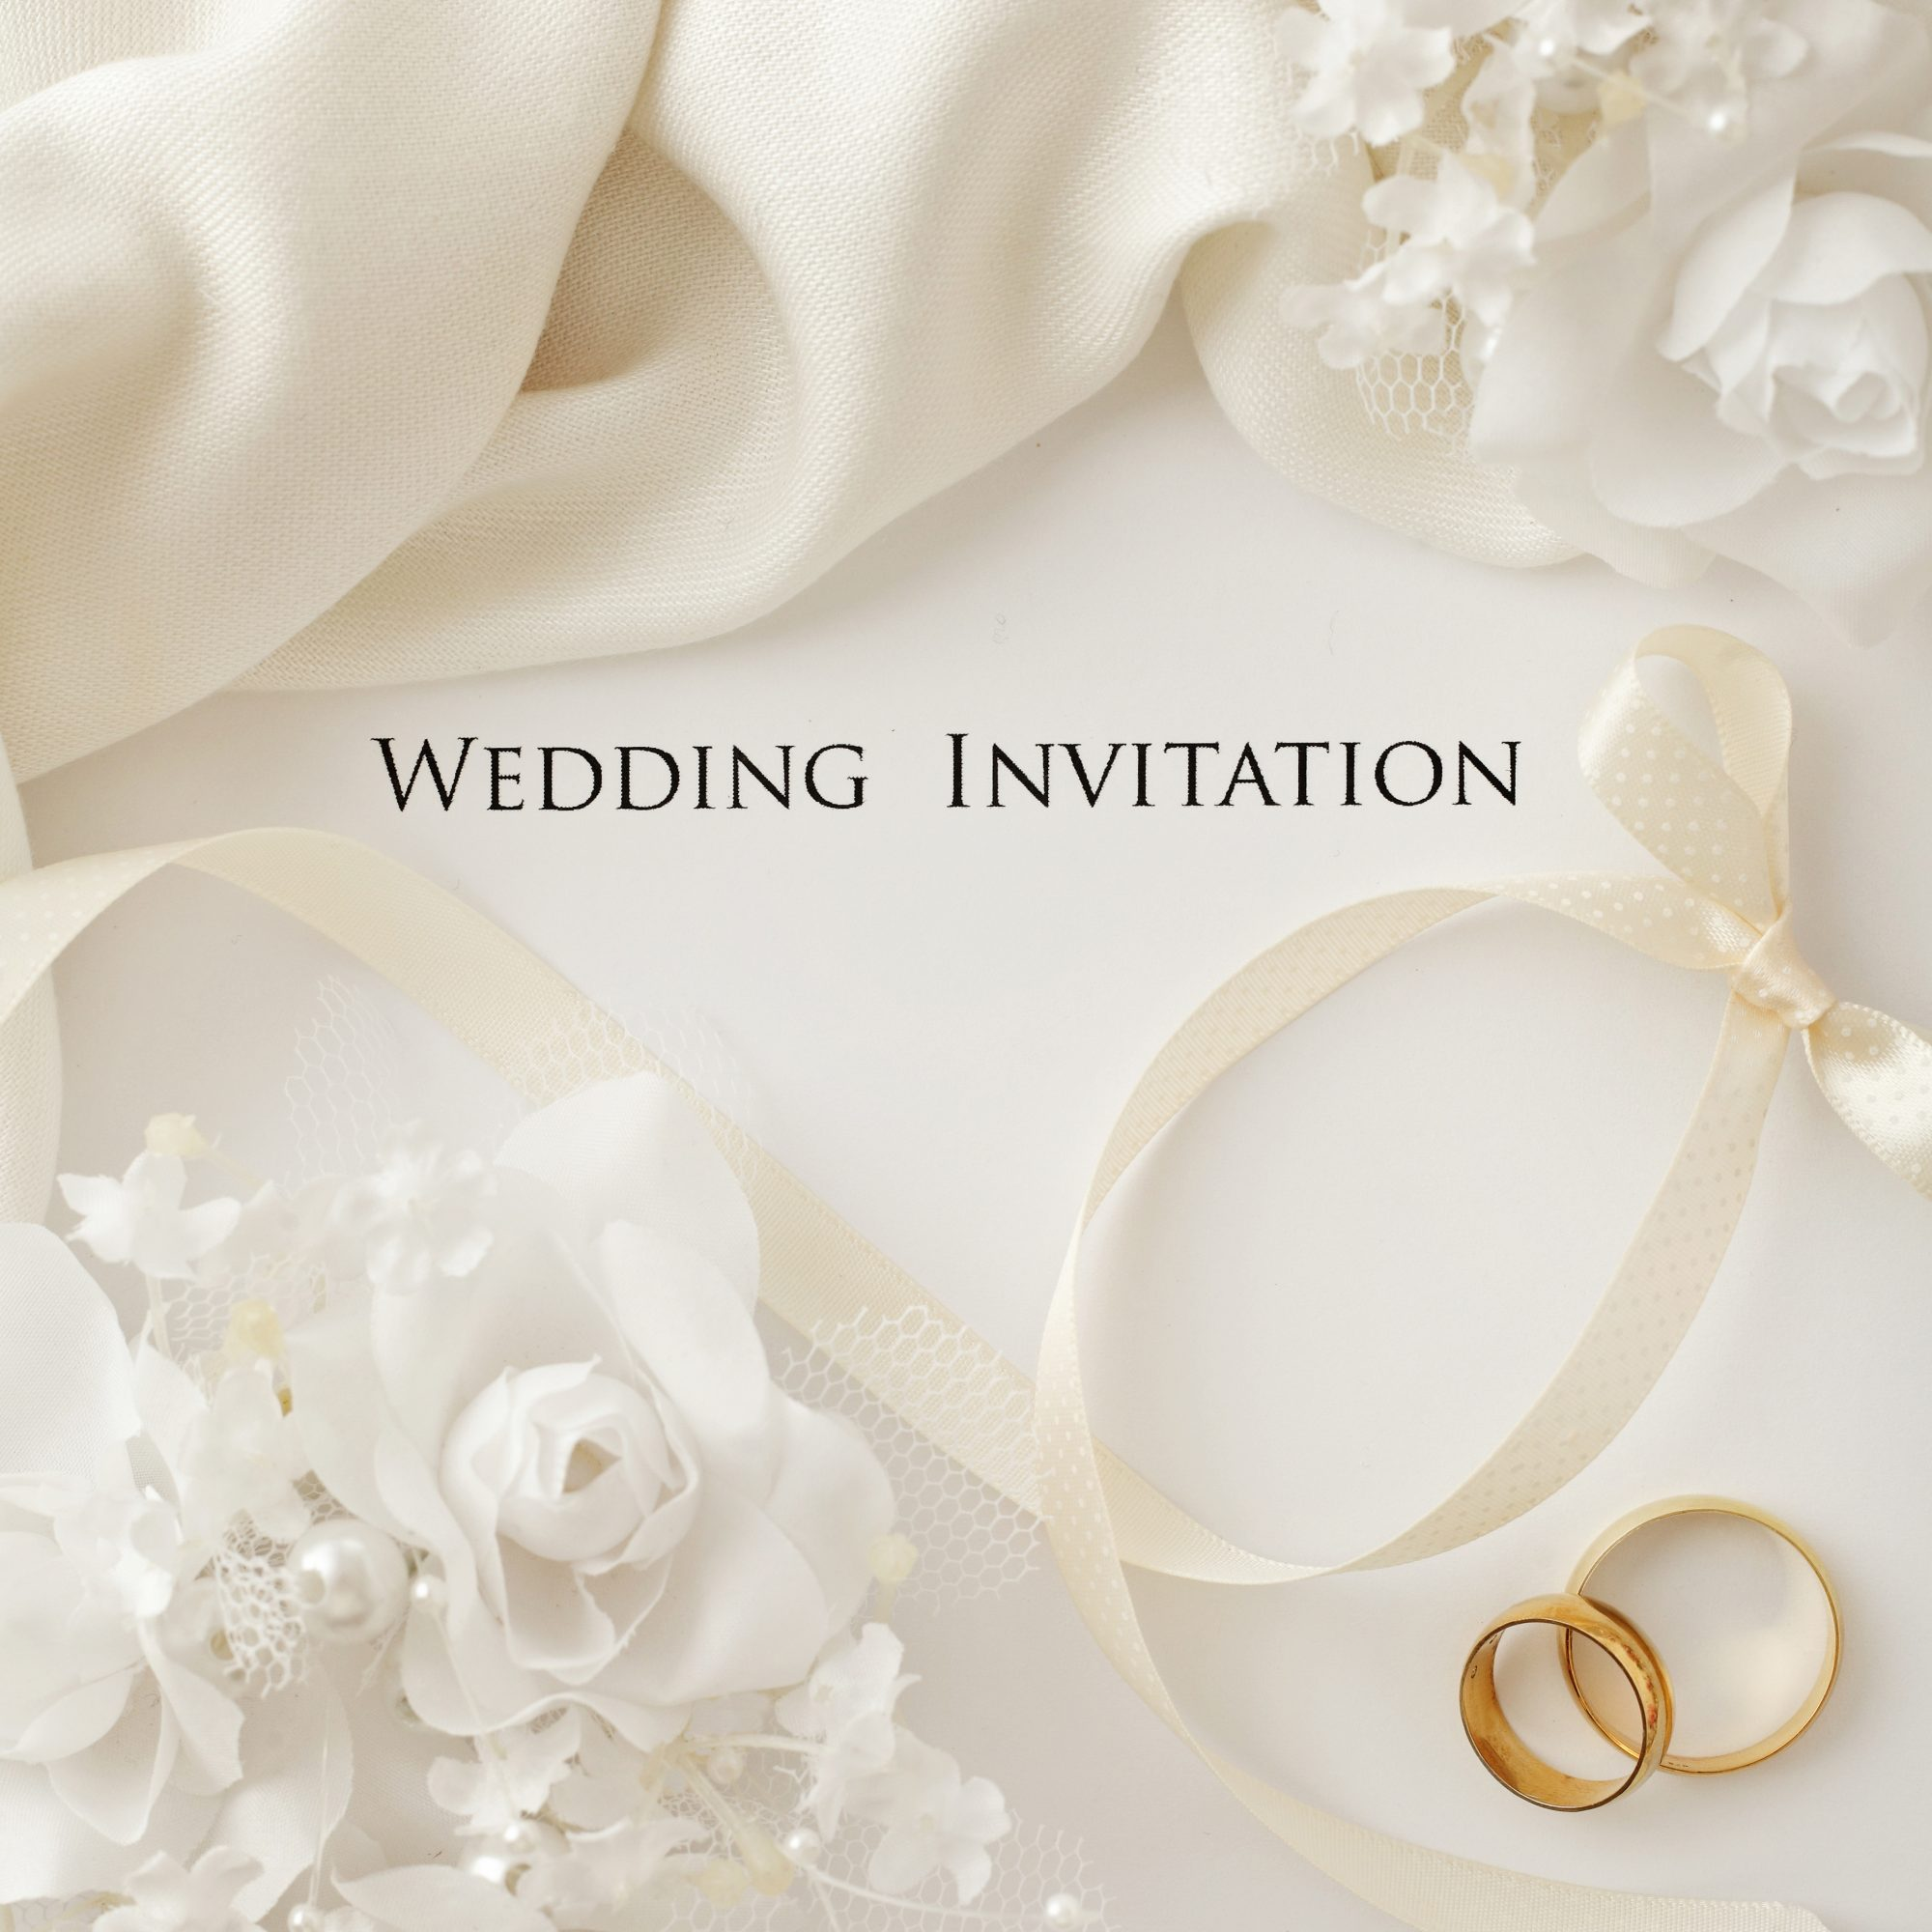 Wedding Invitation Edicate: Wedding Invitation Etiquette: Can I Include My Gift